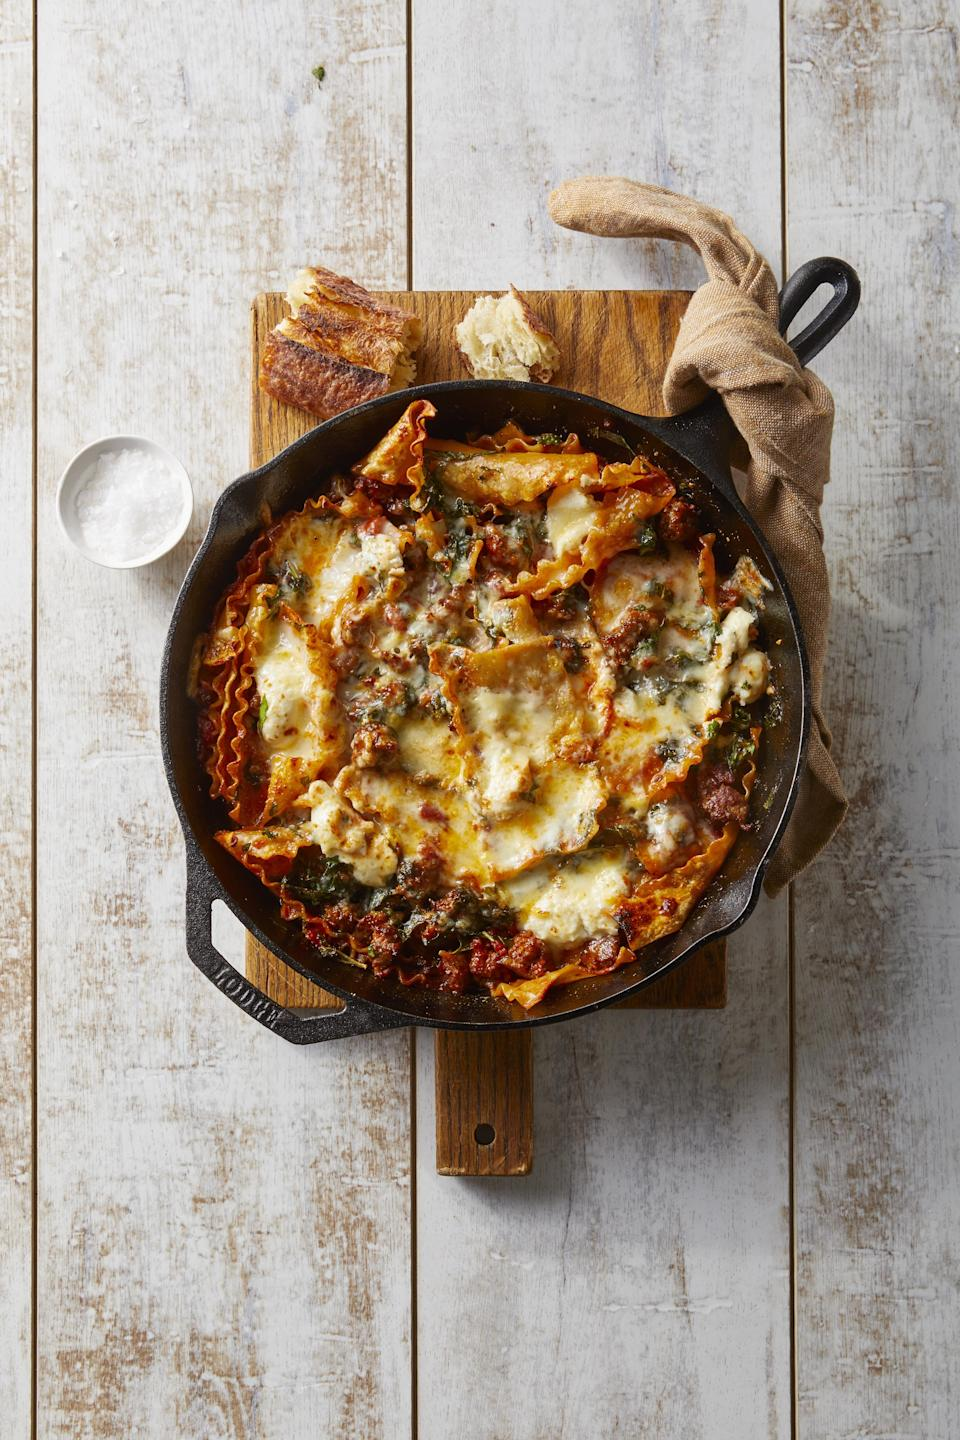 """<p>These <a href=""""https://www.countryliving.com/food-drinks/g648/quick-easy-dinner-recipes/"""" rel=""""nofollow noopener"""" target=""""_blank"""" data-ylk=""""slk:quick, easy dinner recipes"""" class=""""link rapid-noclick-resp"""">quick, easy dinner recipes</a> are so delicious it'll be hard for even the pickiest eaters to say no. Don't believe us? Give this list a look and try one out. We're sure your little ones will be asking for seconds! Best part: they're easy to make too. With plenty of <a href=""""https://www.countryliving.com/food-drinks/g1903/slow-cooker-recipes/"""" rel=""""nofollow noopener"""" target=""""_blank"""" data-ylk=""""slk:slow cooker meals"""" class=""""link rapid-noclick-resp"""">slow cooker meals</a> and <a href=""""https://www.countryliving.com/uk/create/food-and-drink/a1200/best-one-pot-recipes/"""" rel=""""nofollow noopener"""" target=""""_blank"""" data-ylk=""""slk:easy one pot meals"""" class=""""link rapid-noclick-resp"""">easy one pot meals</a> ahead—some dishes only take 10 to 15 minutes to put together! We've got classic favorites as well as fresh, kid-approved pastas and casseroles. If you're ready to take on a <a href=""""https://www.countryliving.com/food-drinks/g4287/cheap-dinner-ideas/"""" rel=""""nofollow noopener"""" target=""""_blank"""" data-ylk=""""slk:cheap dinner idea"""" class=""""link rapid-noclick-resp"""">cheap dinner idea</a> that's also a crowd-pleaser, take a look through some of our favorite dinner ideas right here.</p>"""